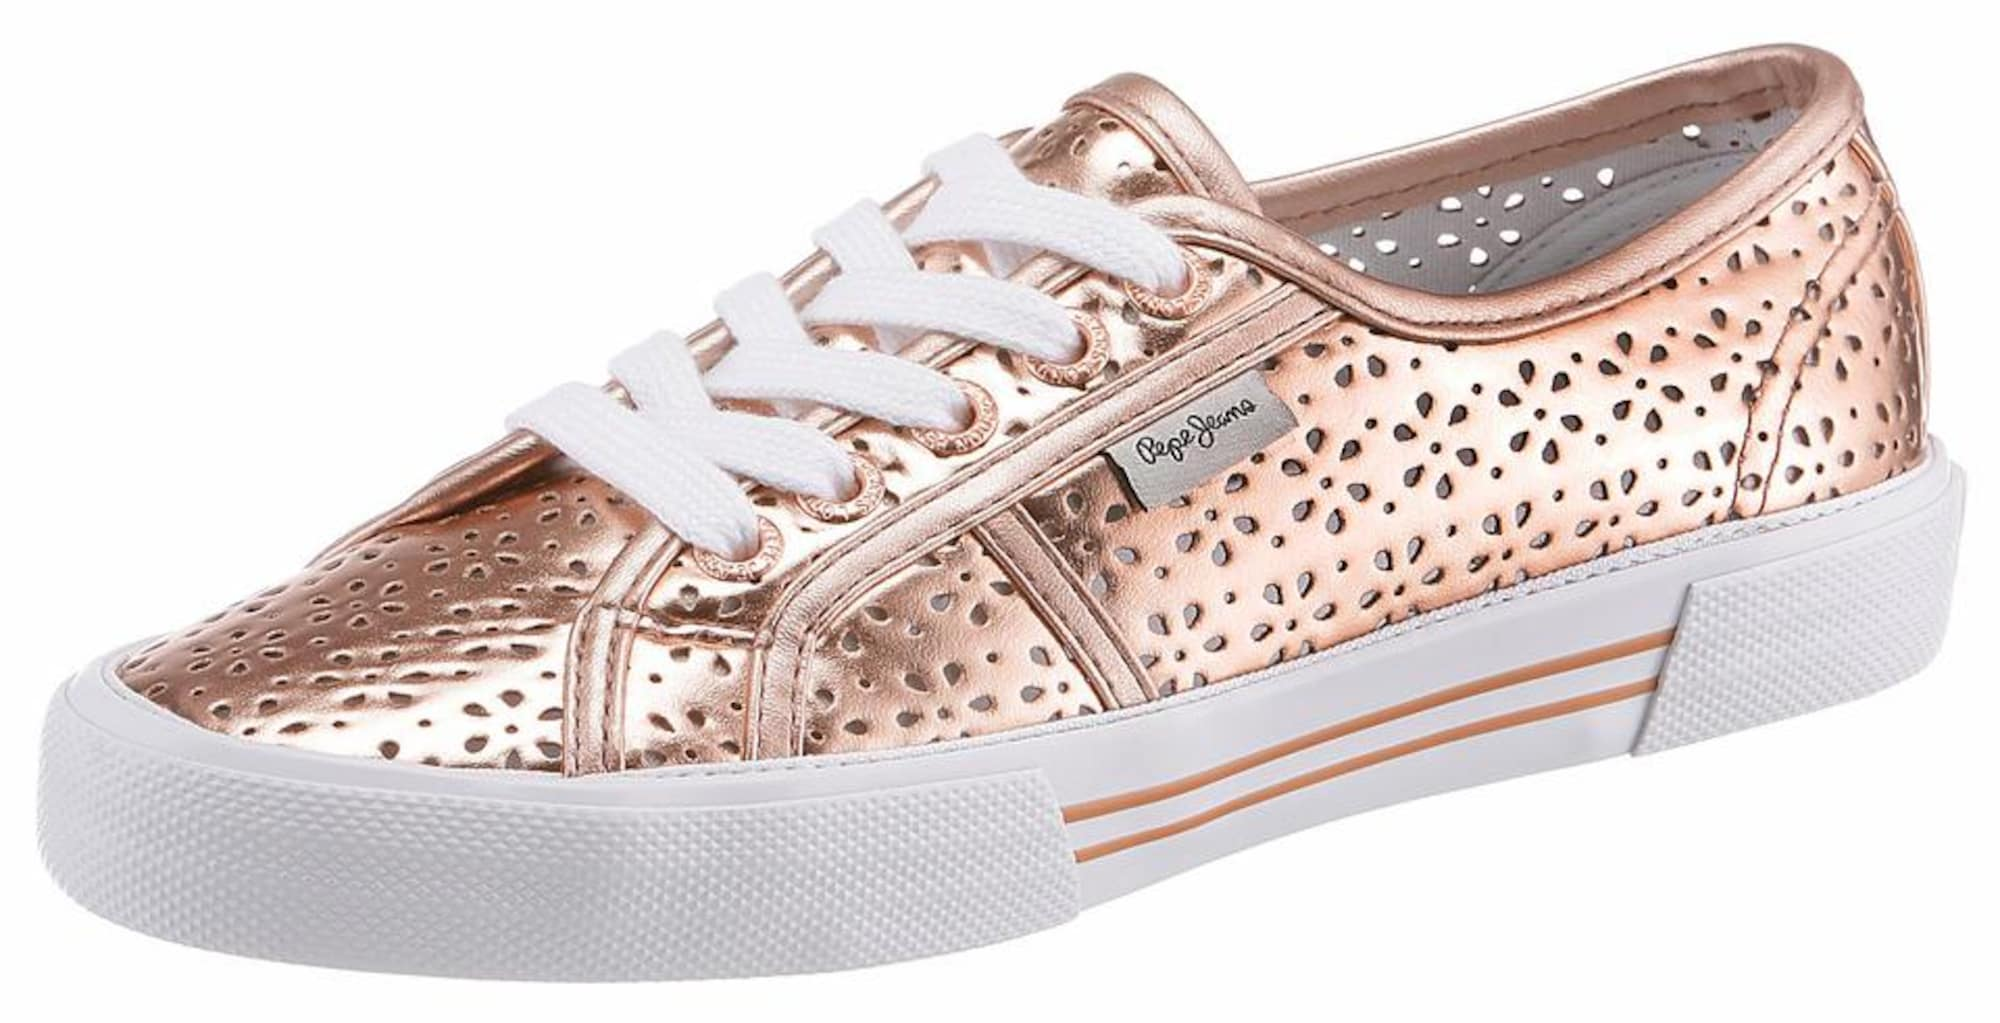 Pepe Jeans Dames Sneakers laag ABERLADY DAISY rose-goud